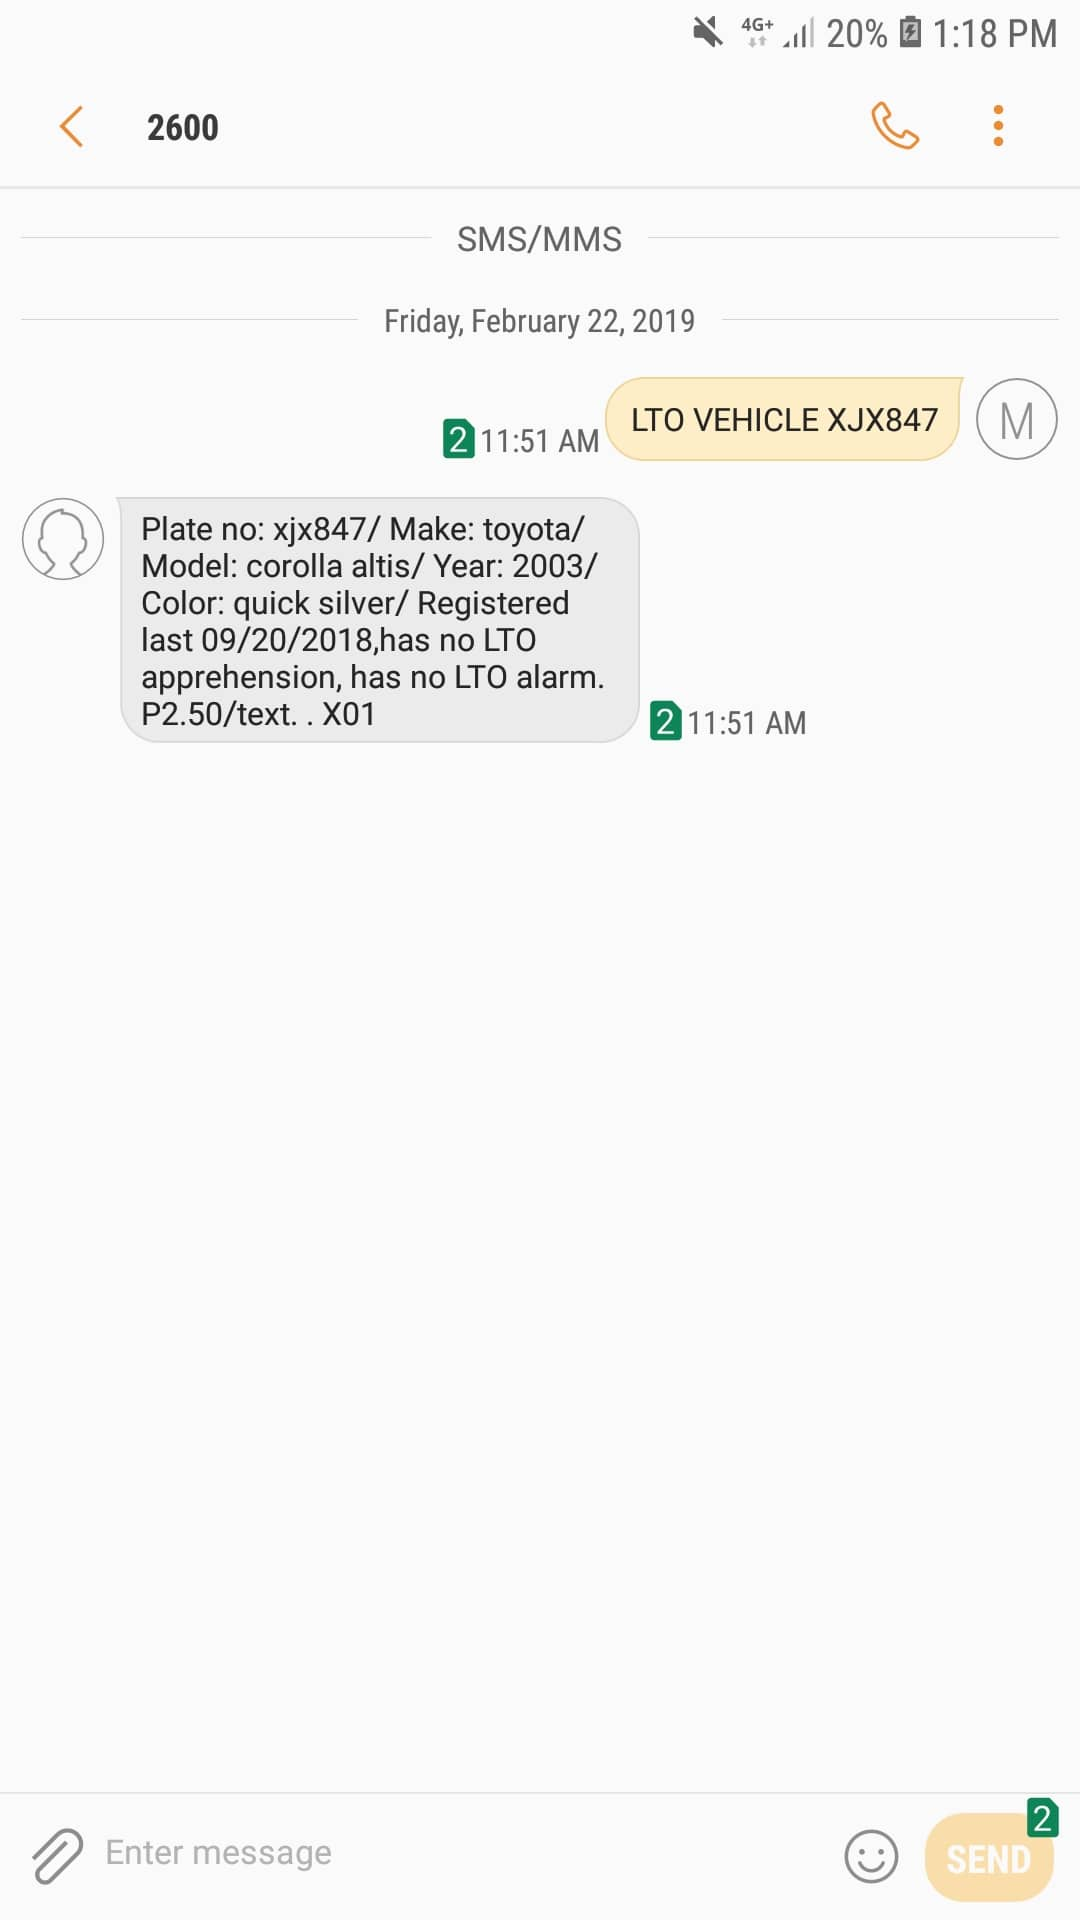 SMS Utility to verify a plate number in the PH